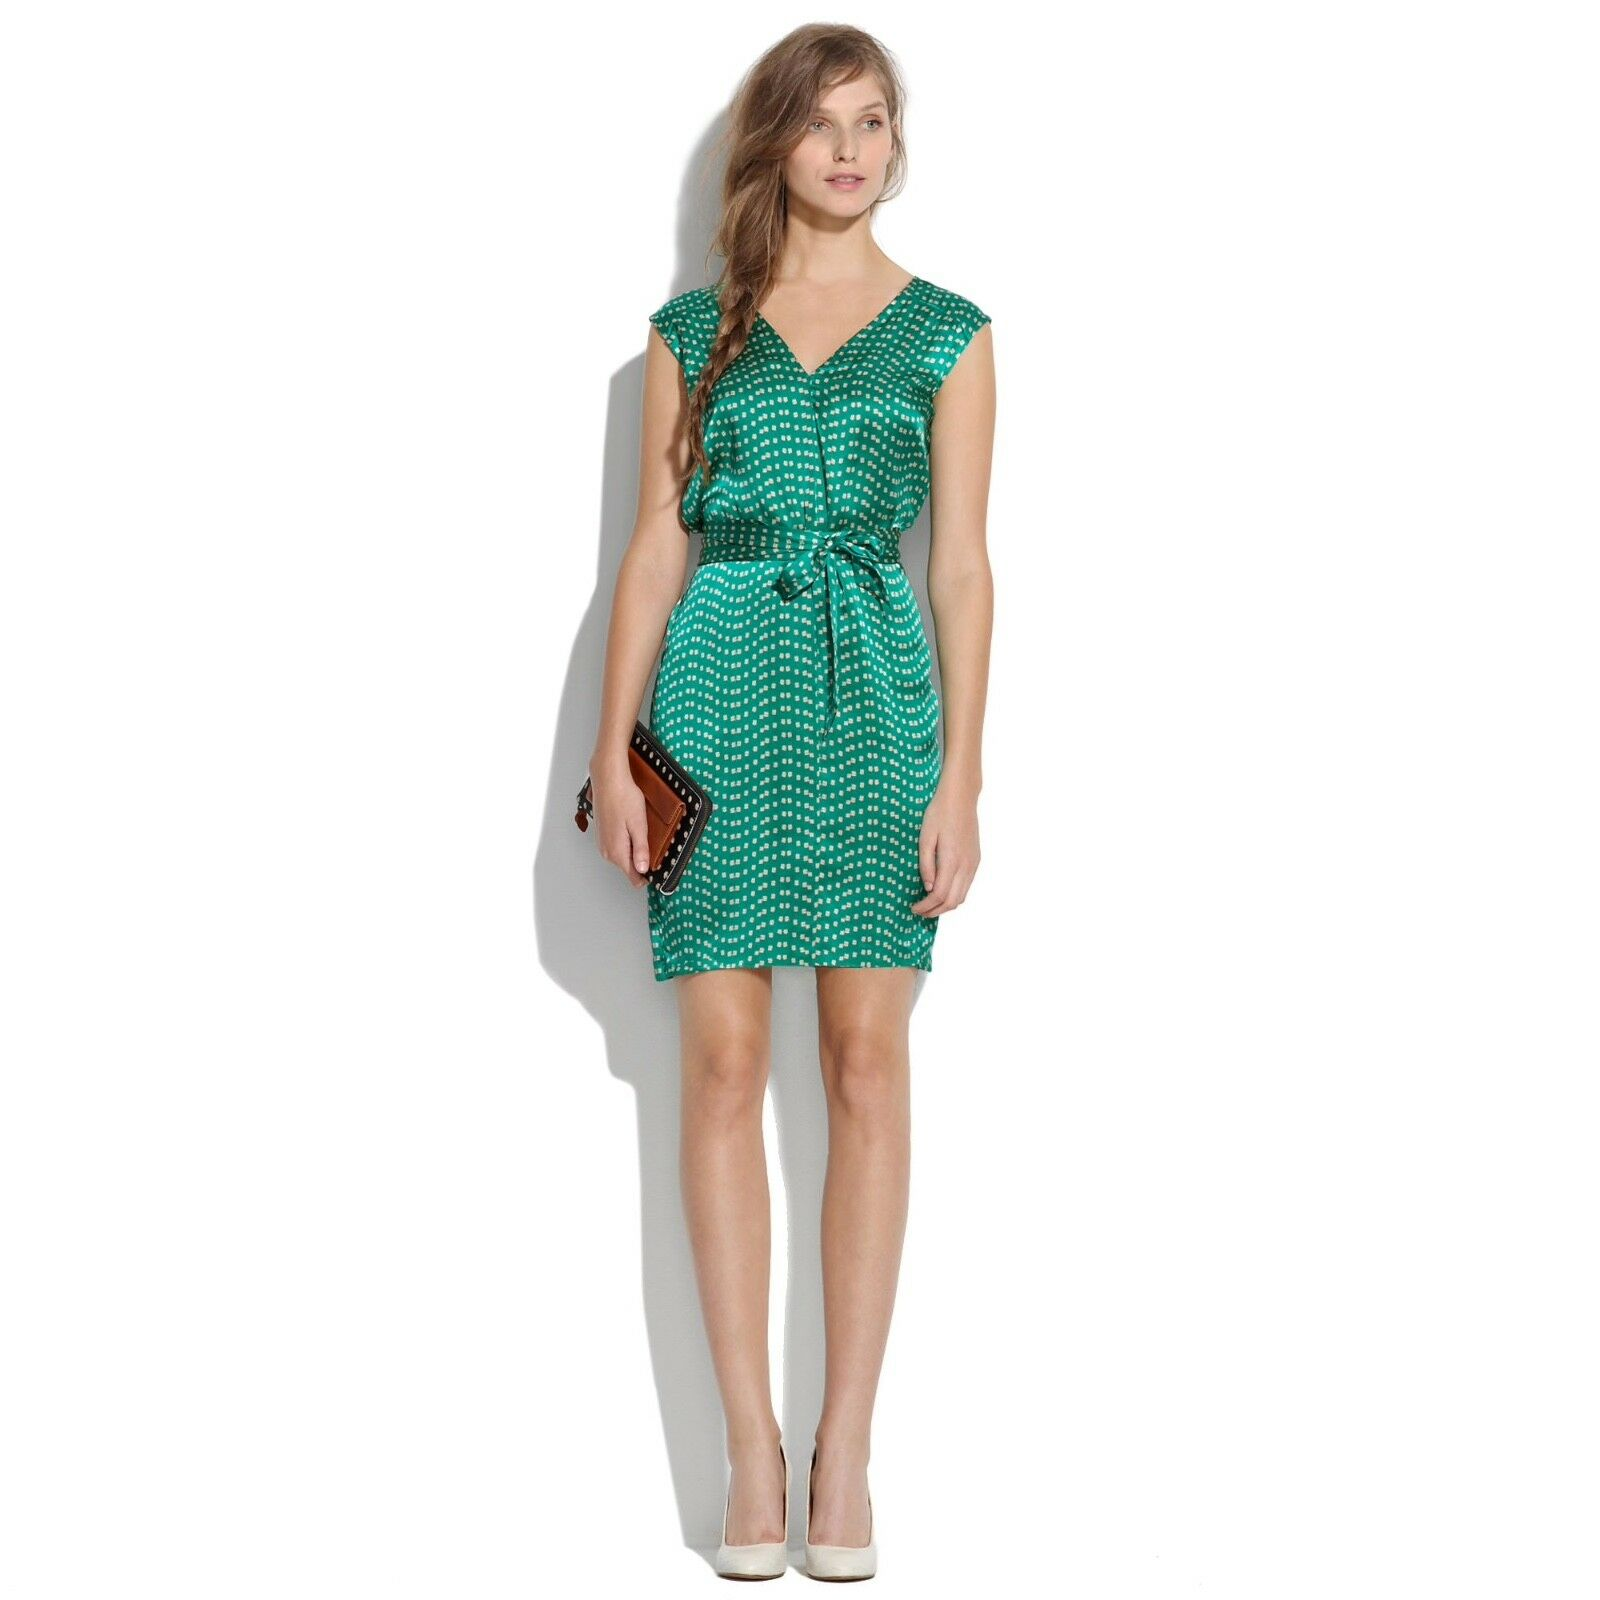 NWT MADEWELL Broadway & Broome Belted Silk Dress in Dashdot, Green,Size XS,  158